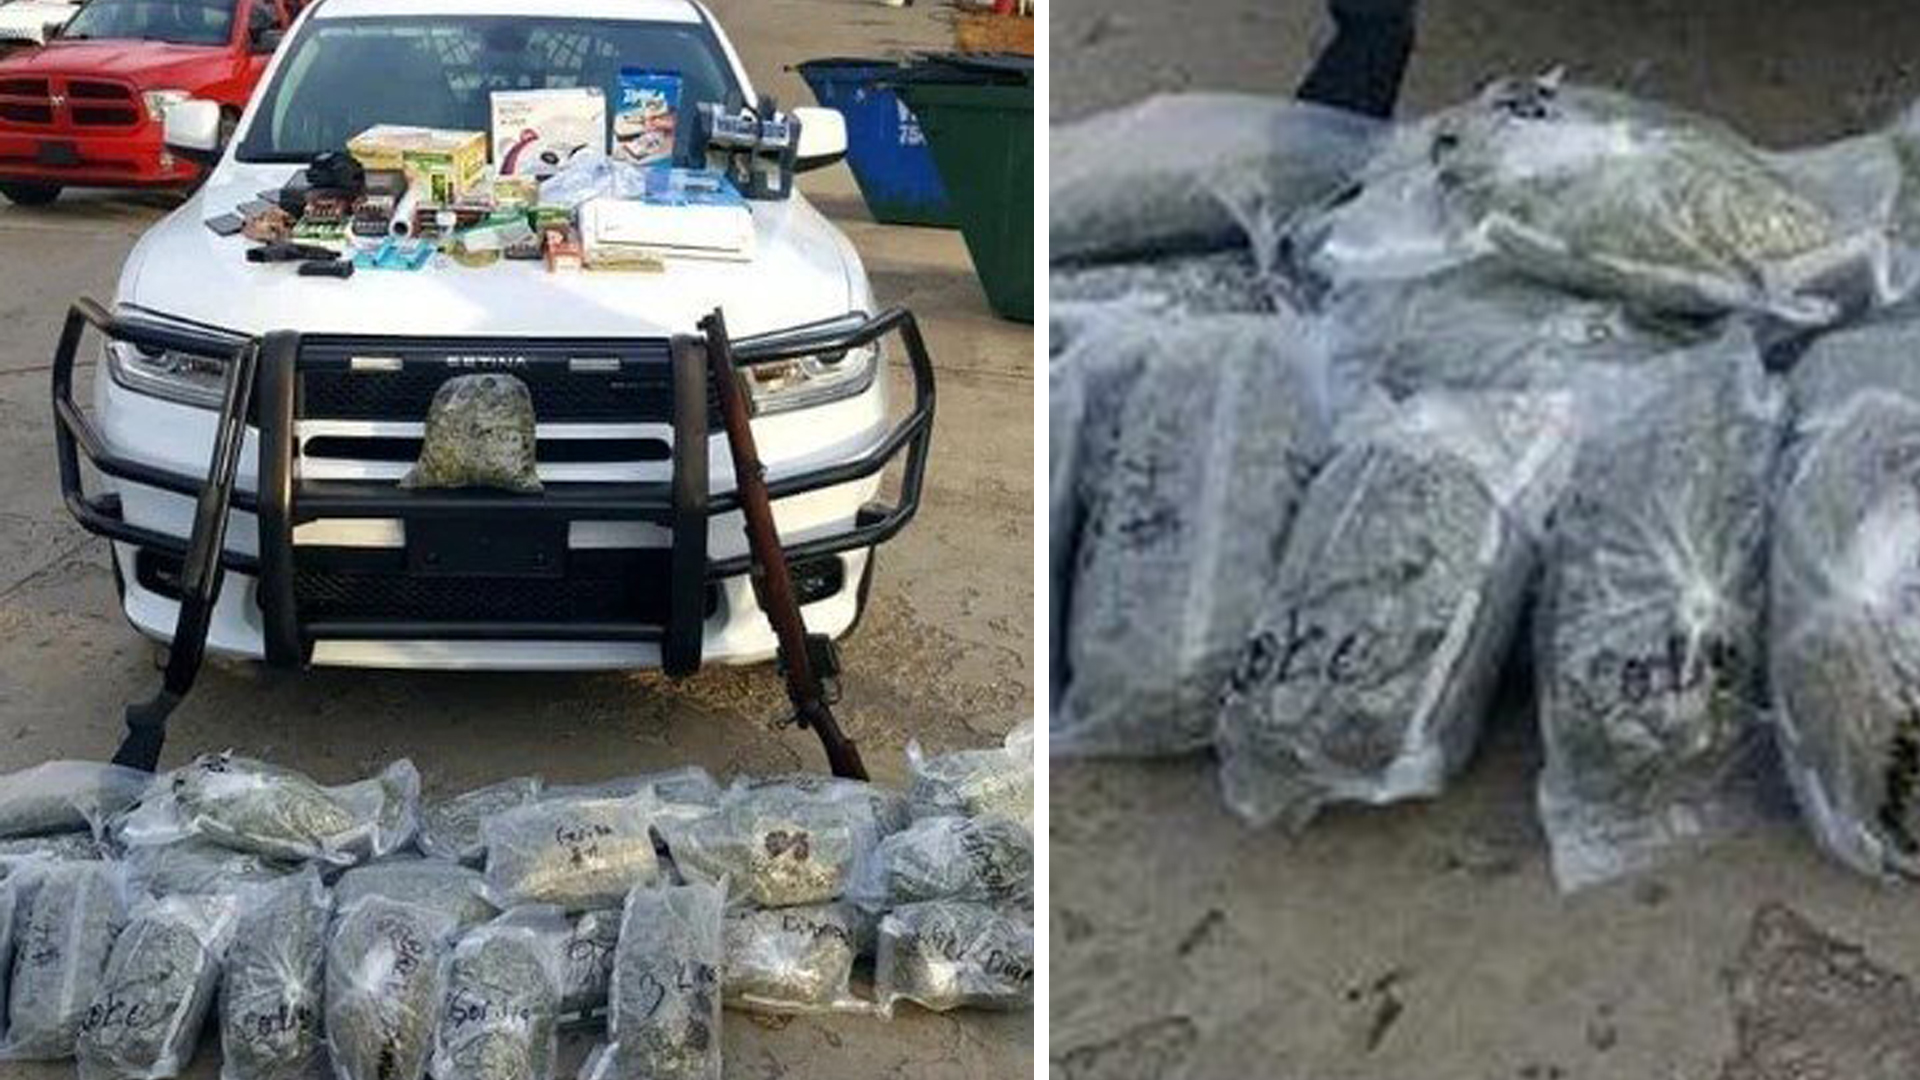 Bags of marijuana and illegal weapons found in a vehicle in Arkansas are seen in an undated photo released by the Johnson County Sheriff's Department.